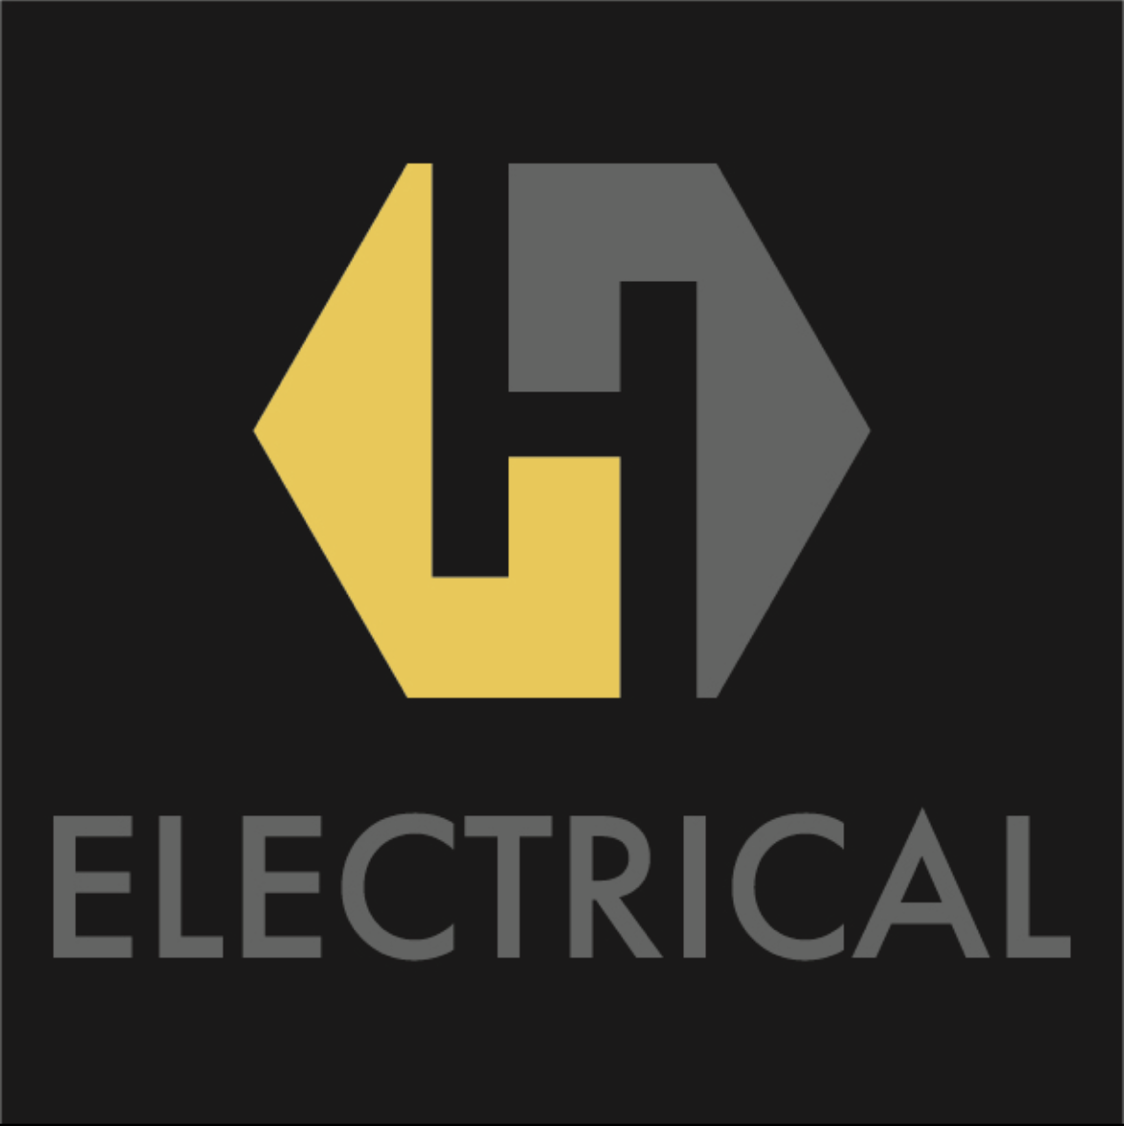 H Electrical